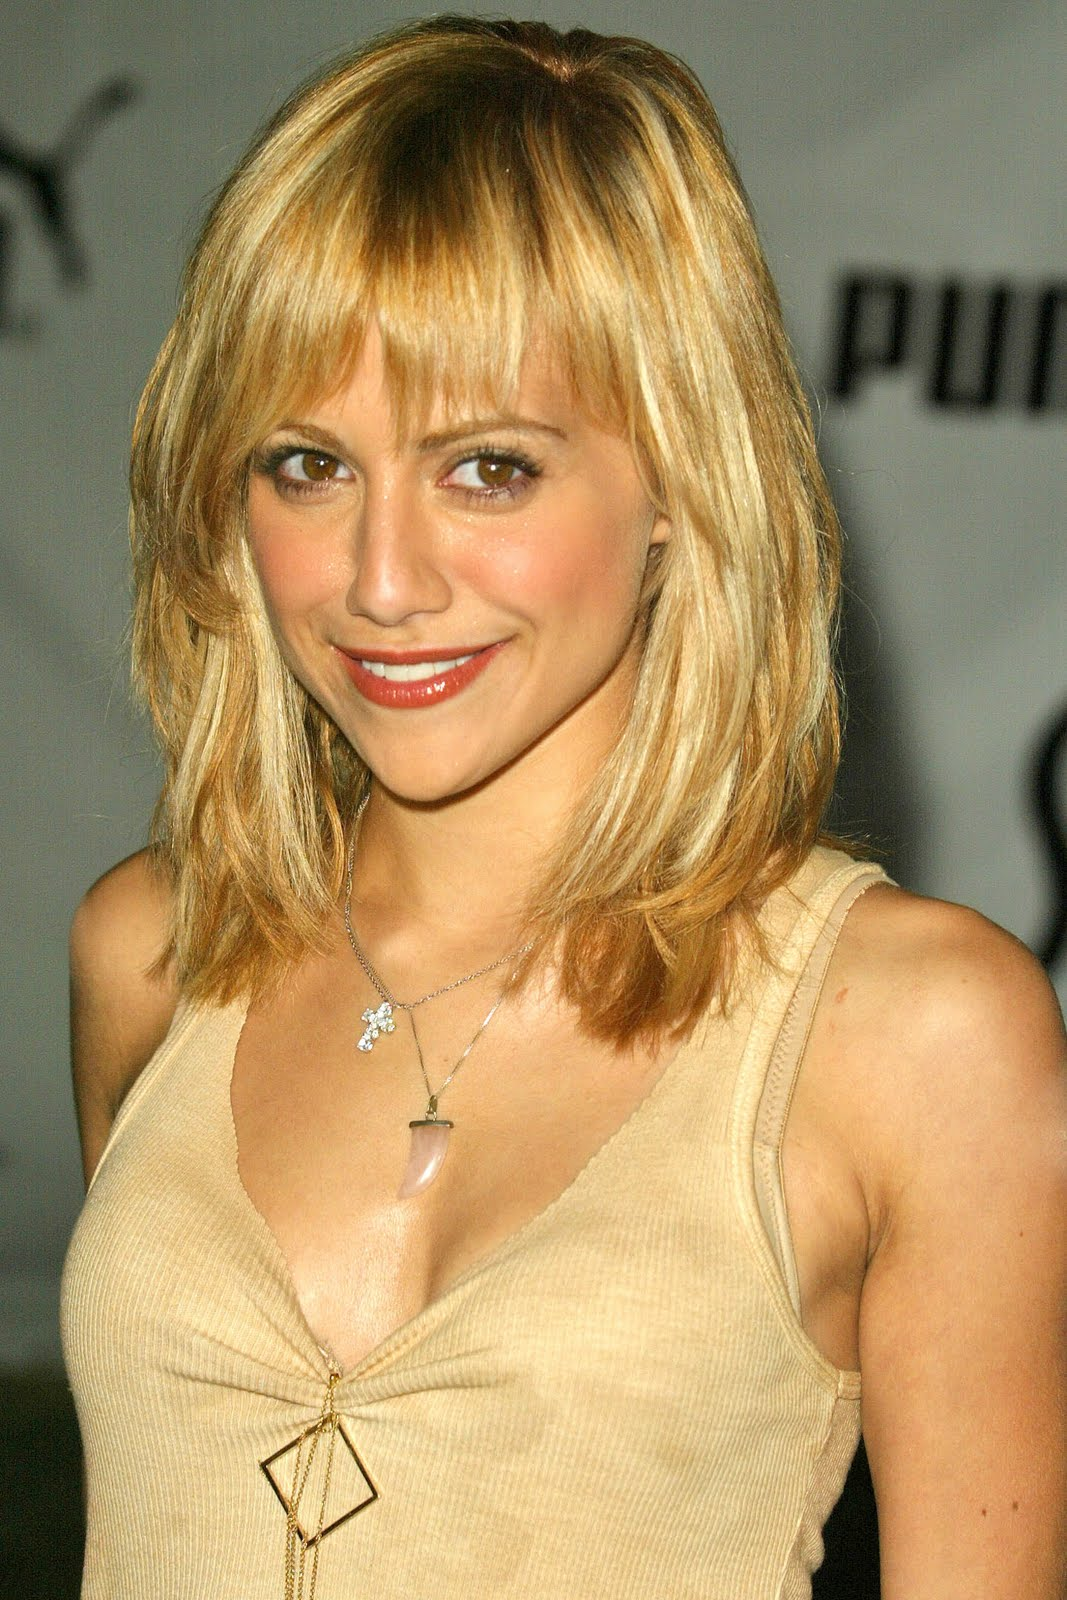 Medium Length Wavy Hairstyles For Blonde Hair 2011 title=